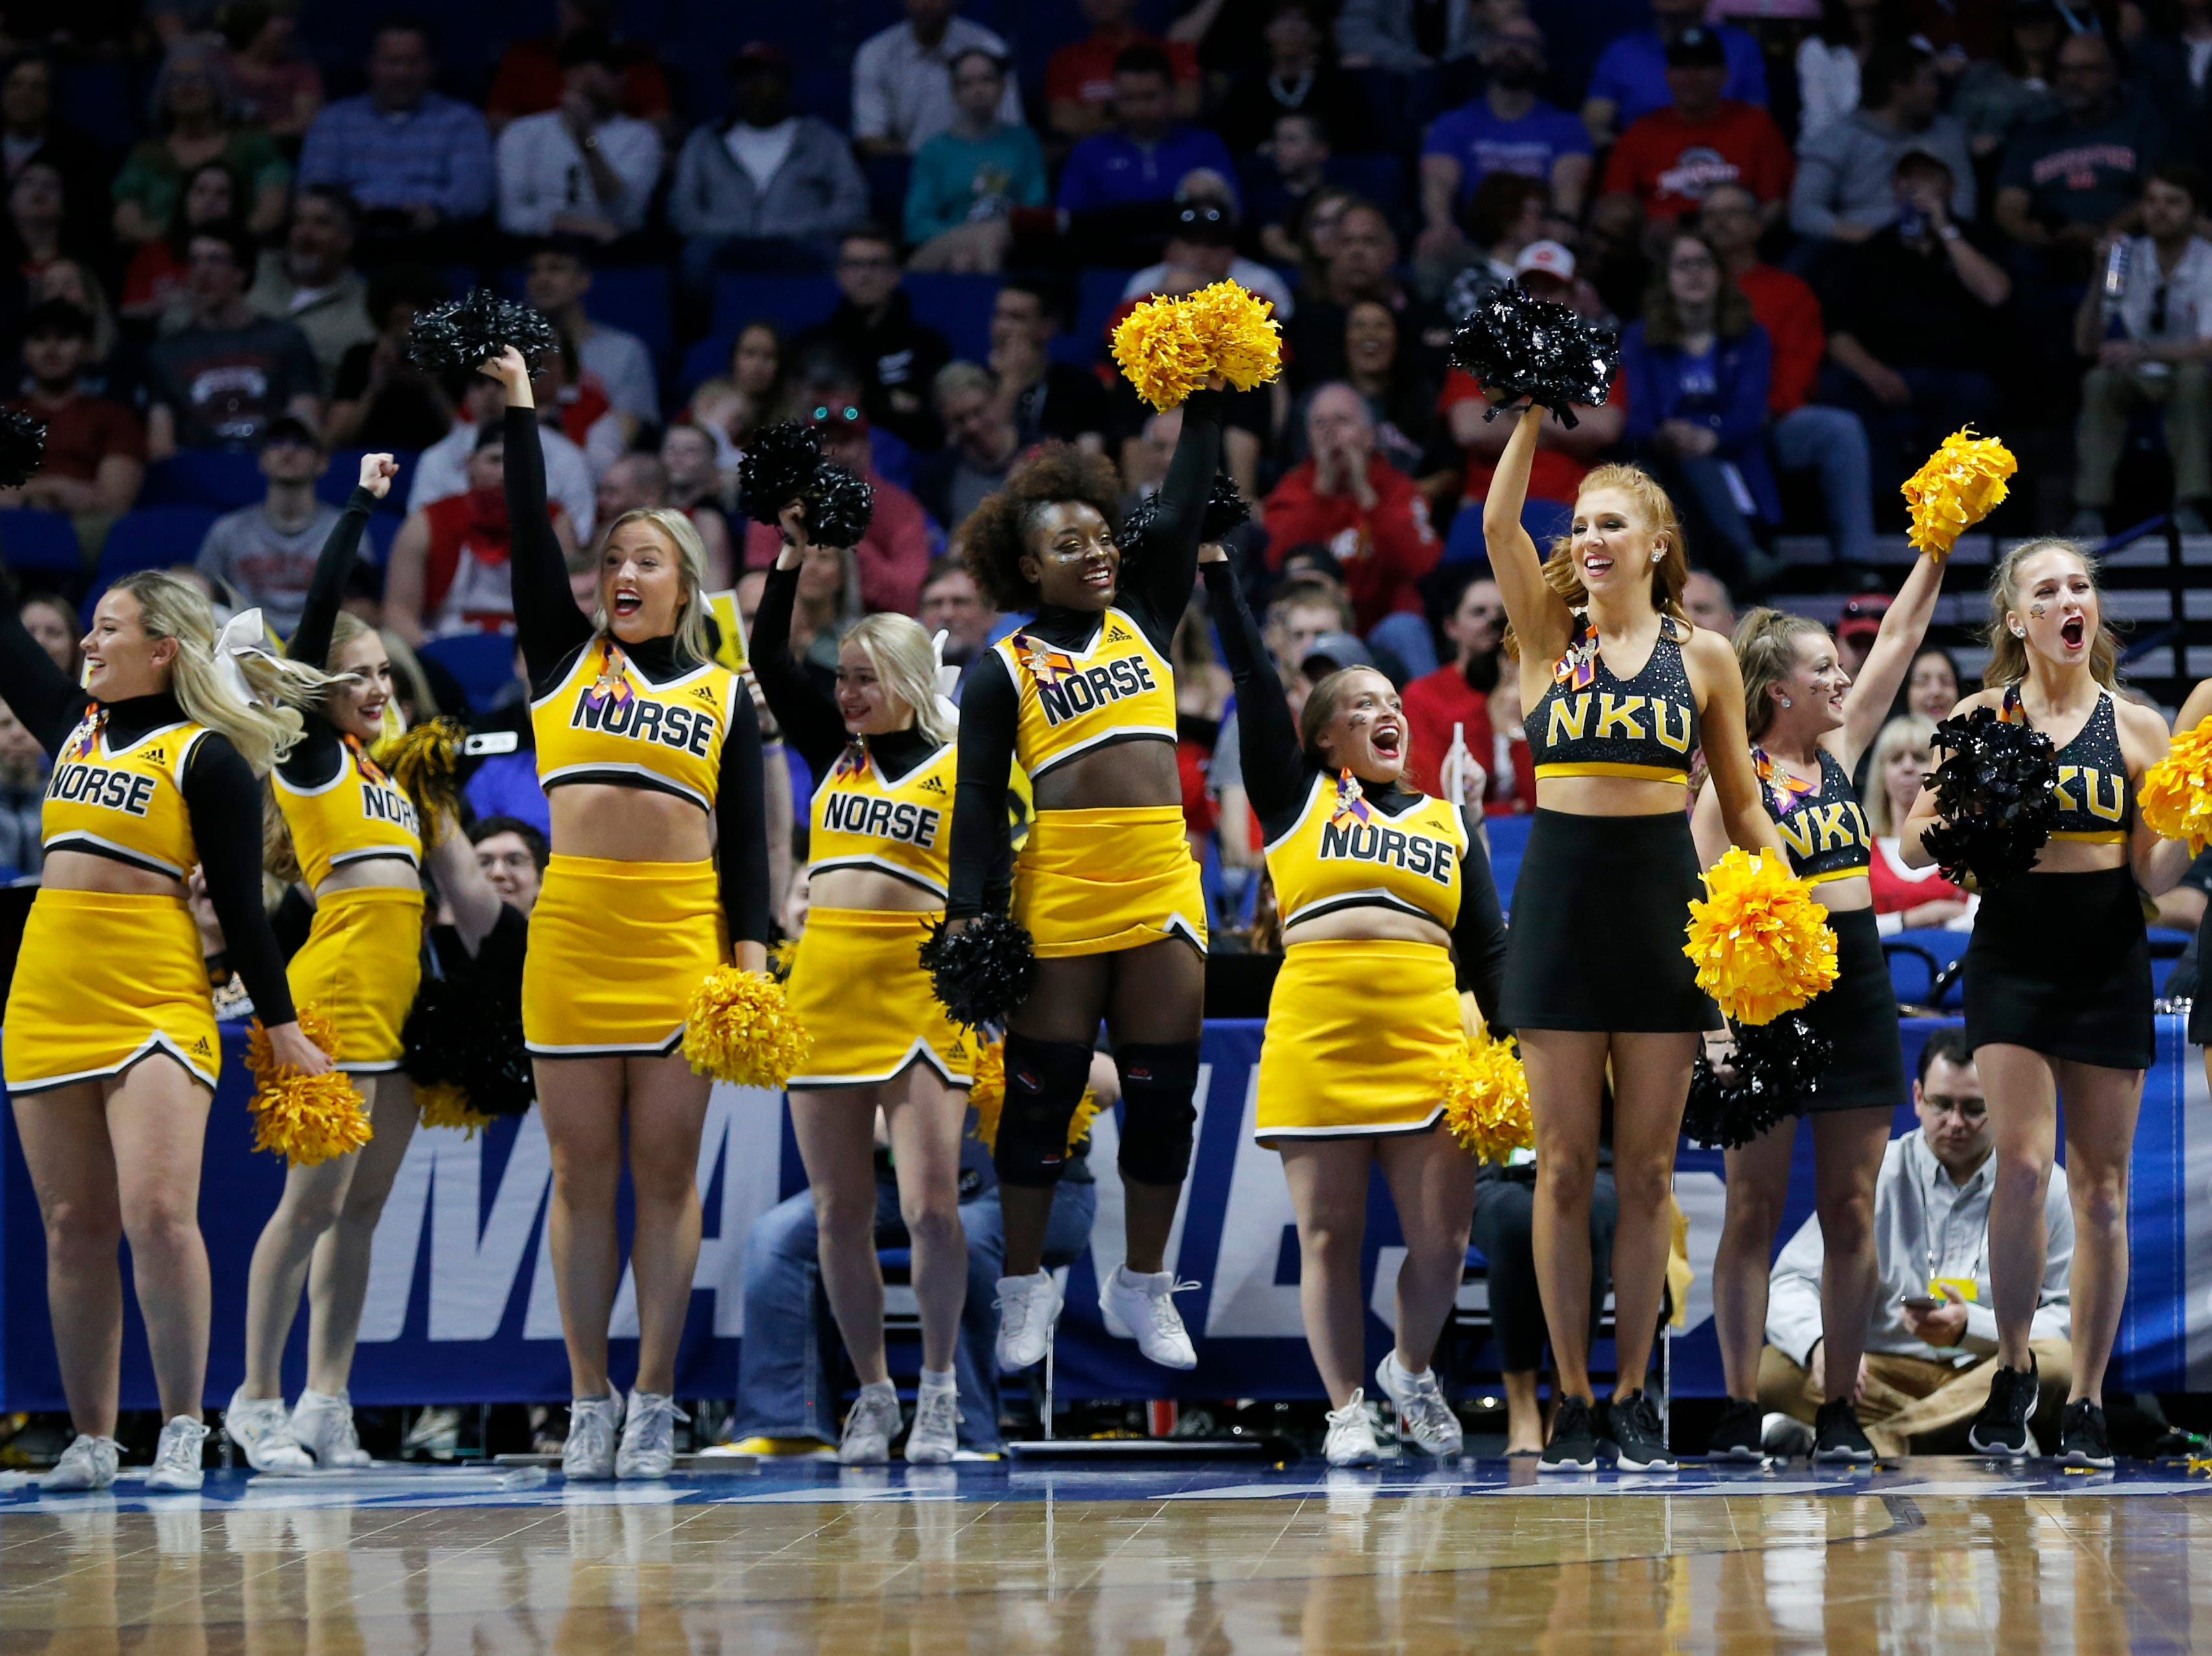 The Northern Kentucky Norse cheer and dance teams celebrate a shot in the first half of the NCAA Tournament First Round game between the 14-seeded Northern Kentucky Norse and the 3-seeded Texas Tech Red Raiders the BOK Center in downtown Tulsa on Friday, March 22, 2019. Texas Tech led 30-26 at halftime.